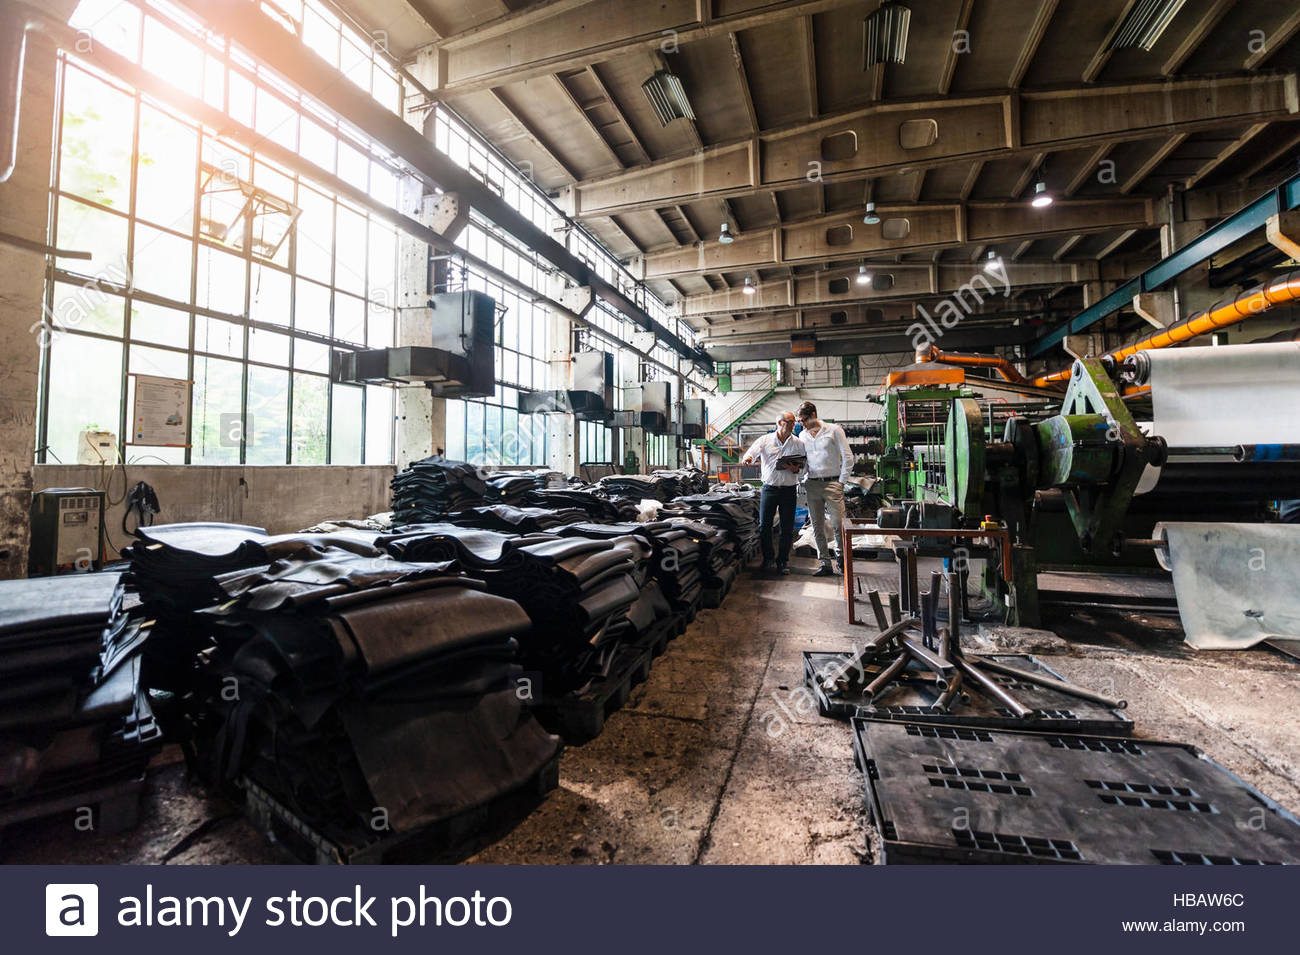 Colleagues inspecting rubber in tyre manufacturing plant, Ballenstedt, Germany - Stock Image